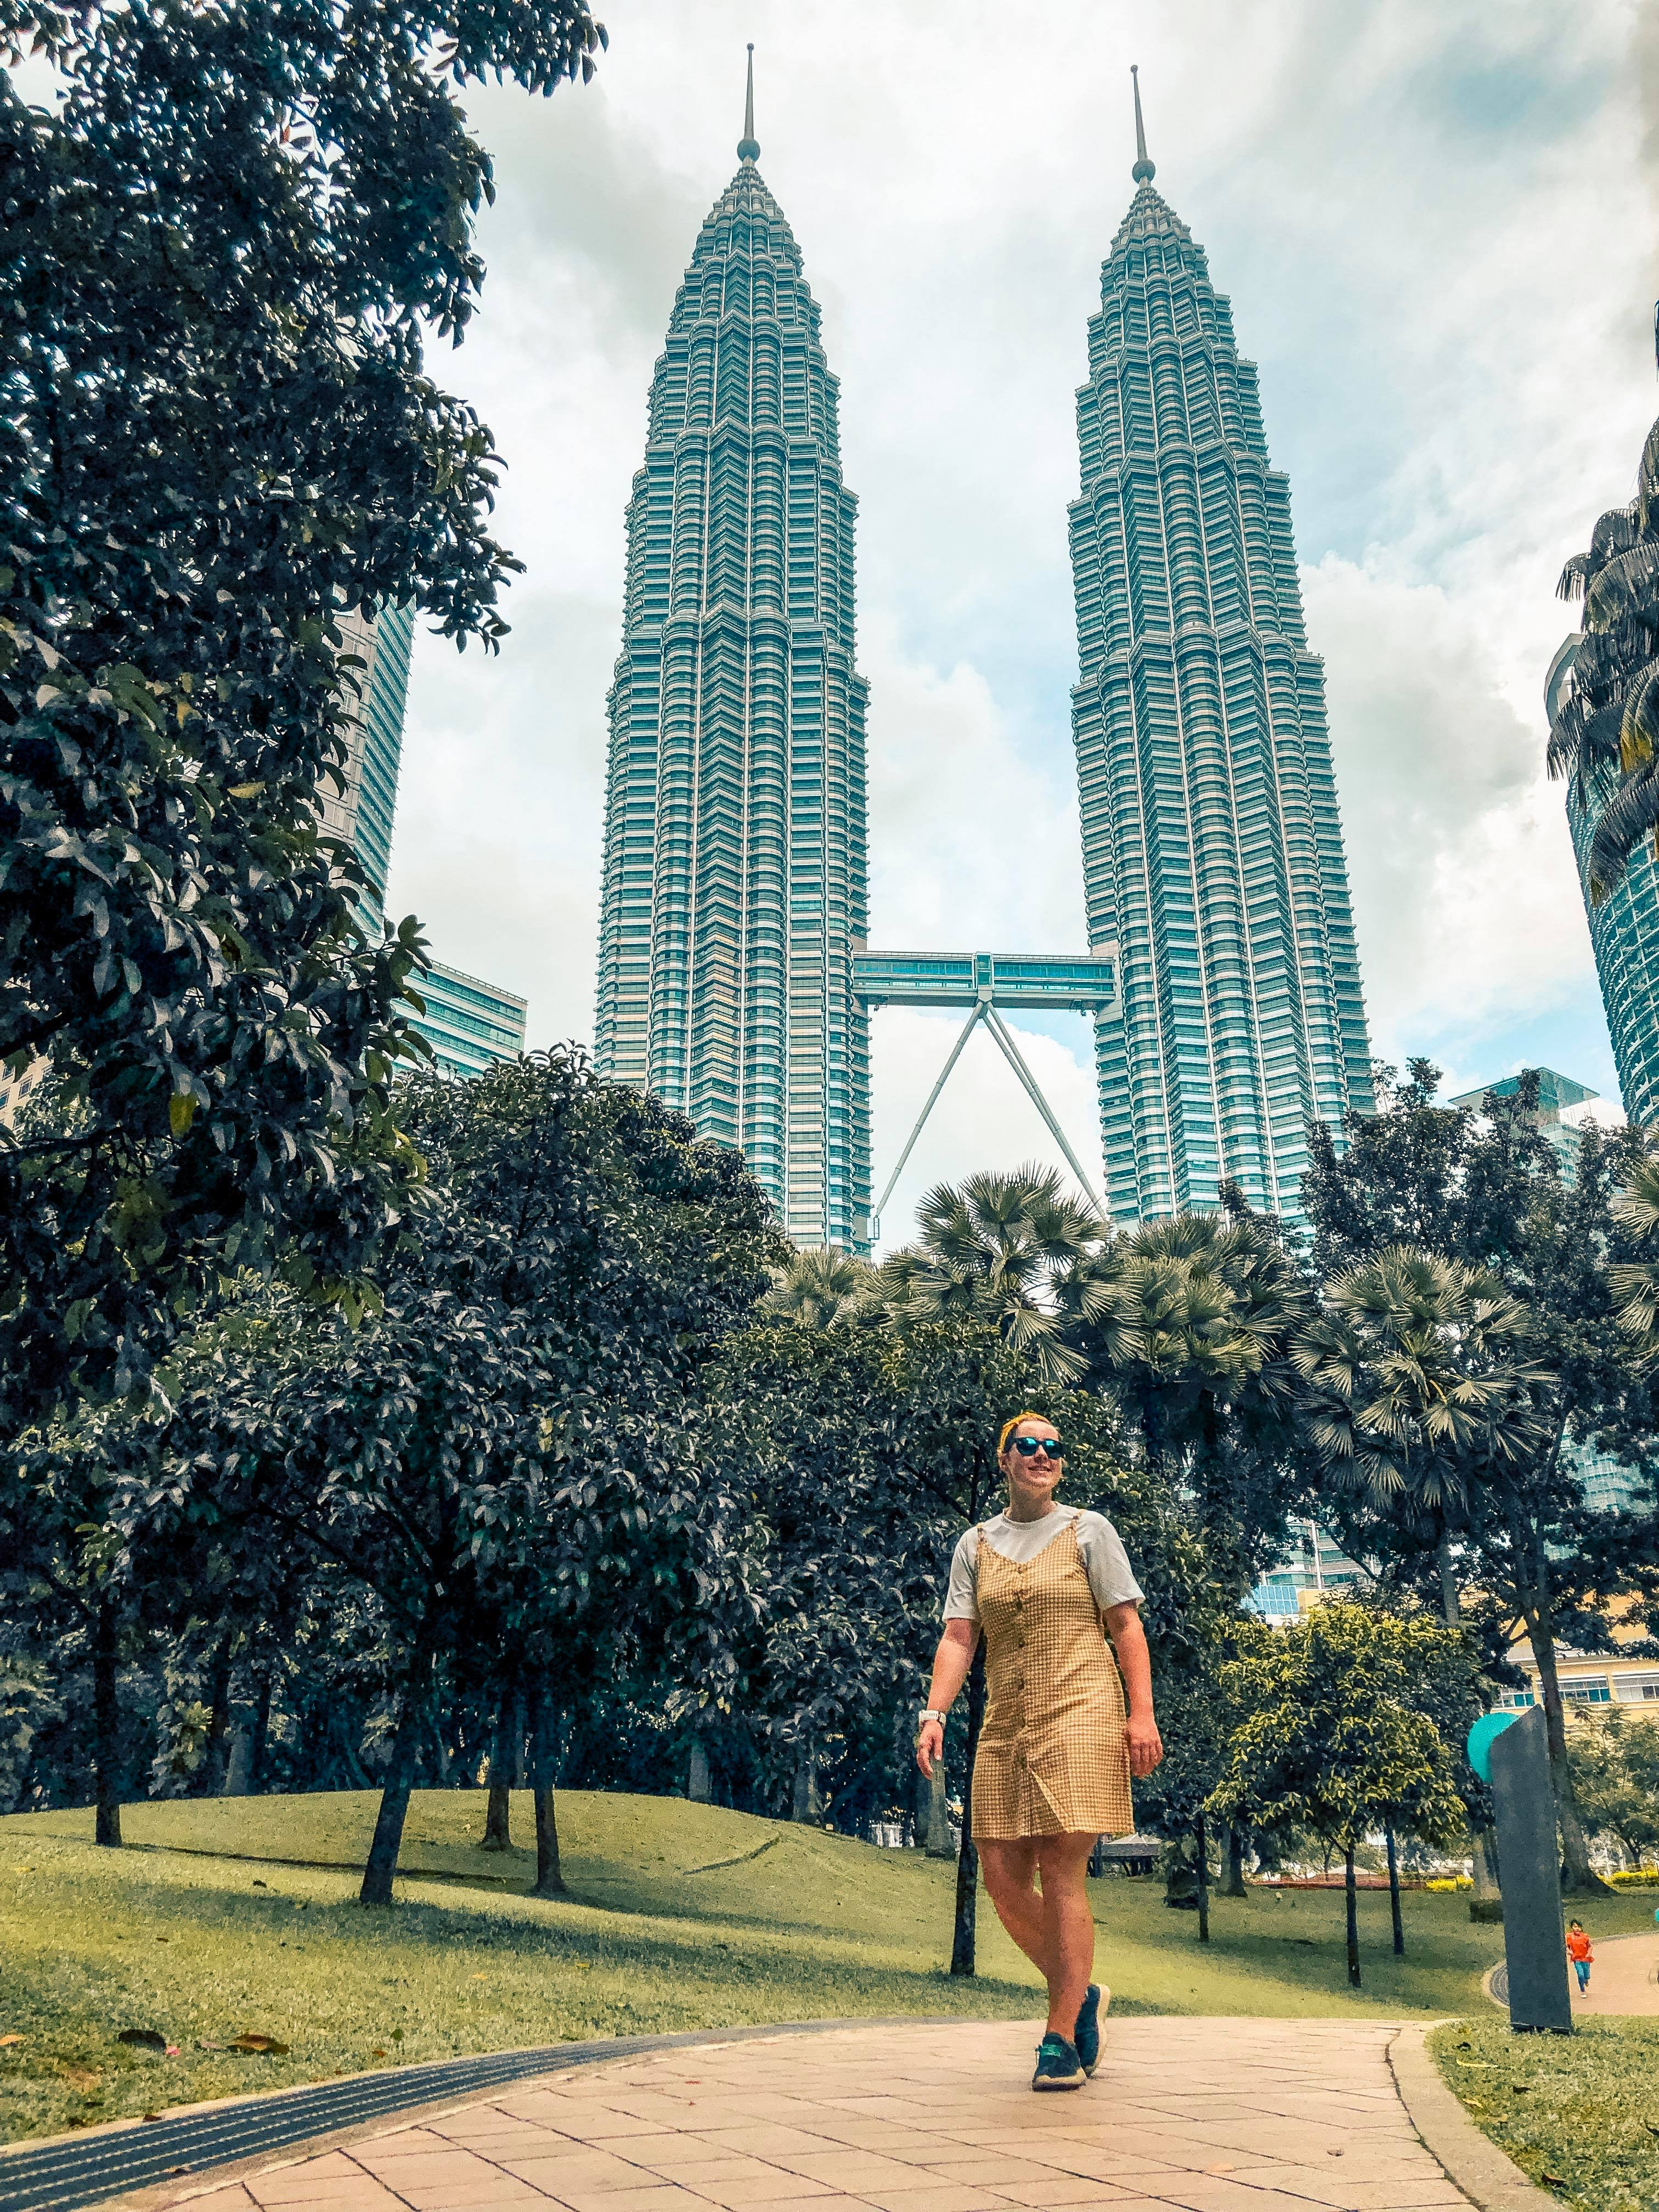 A girl in a yellow dress walking through a park with the KL two towers behind